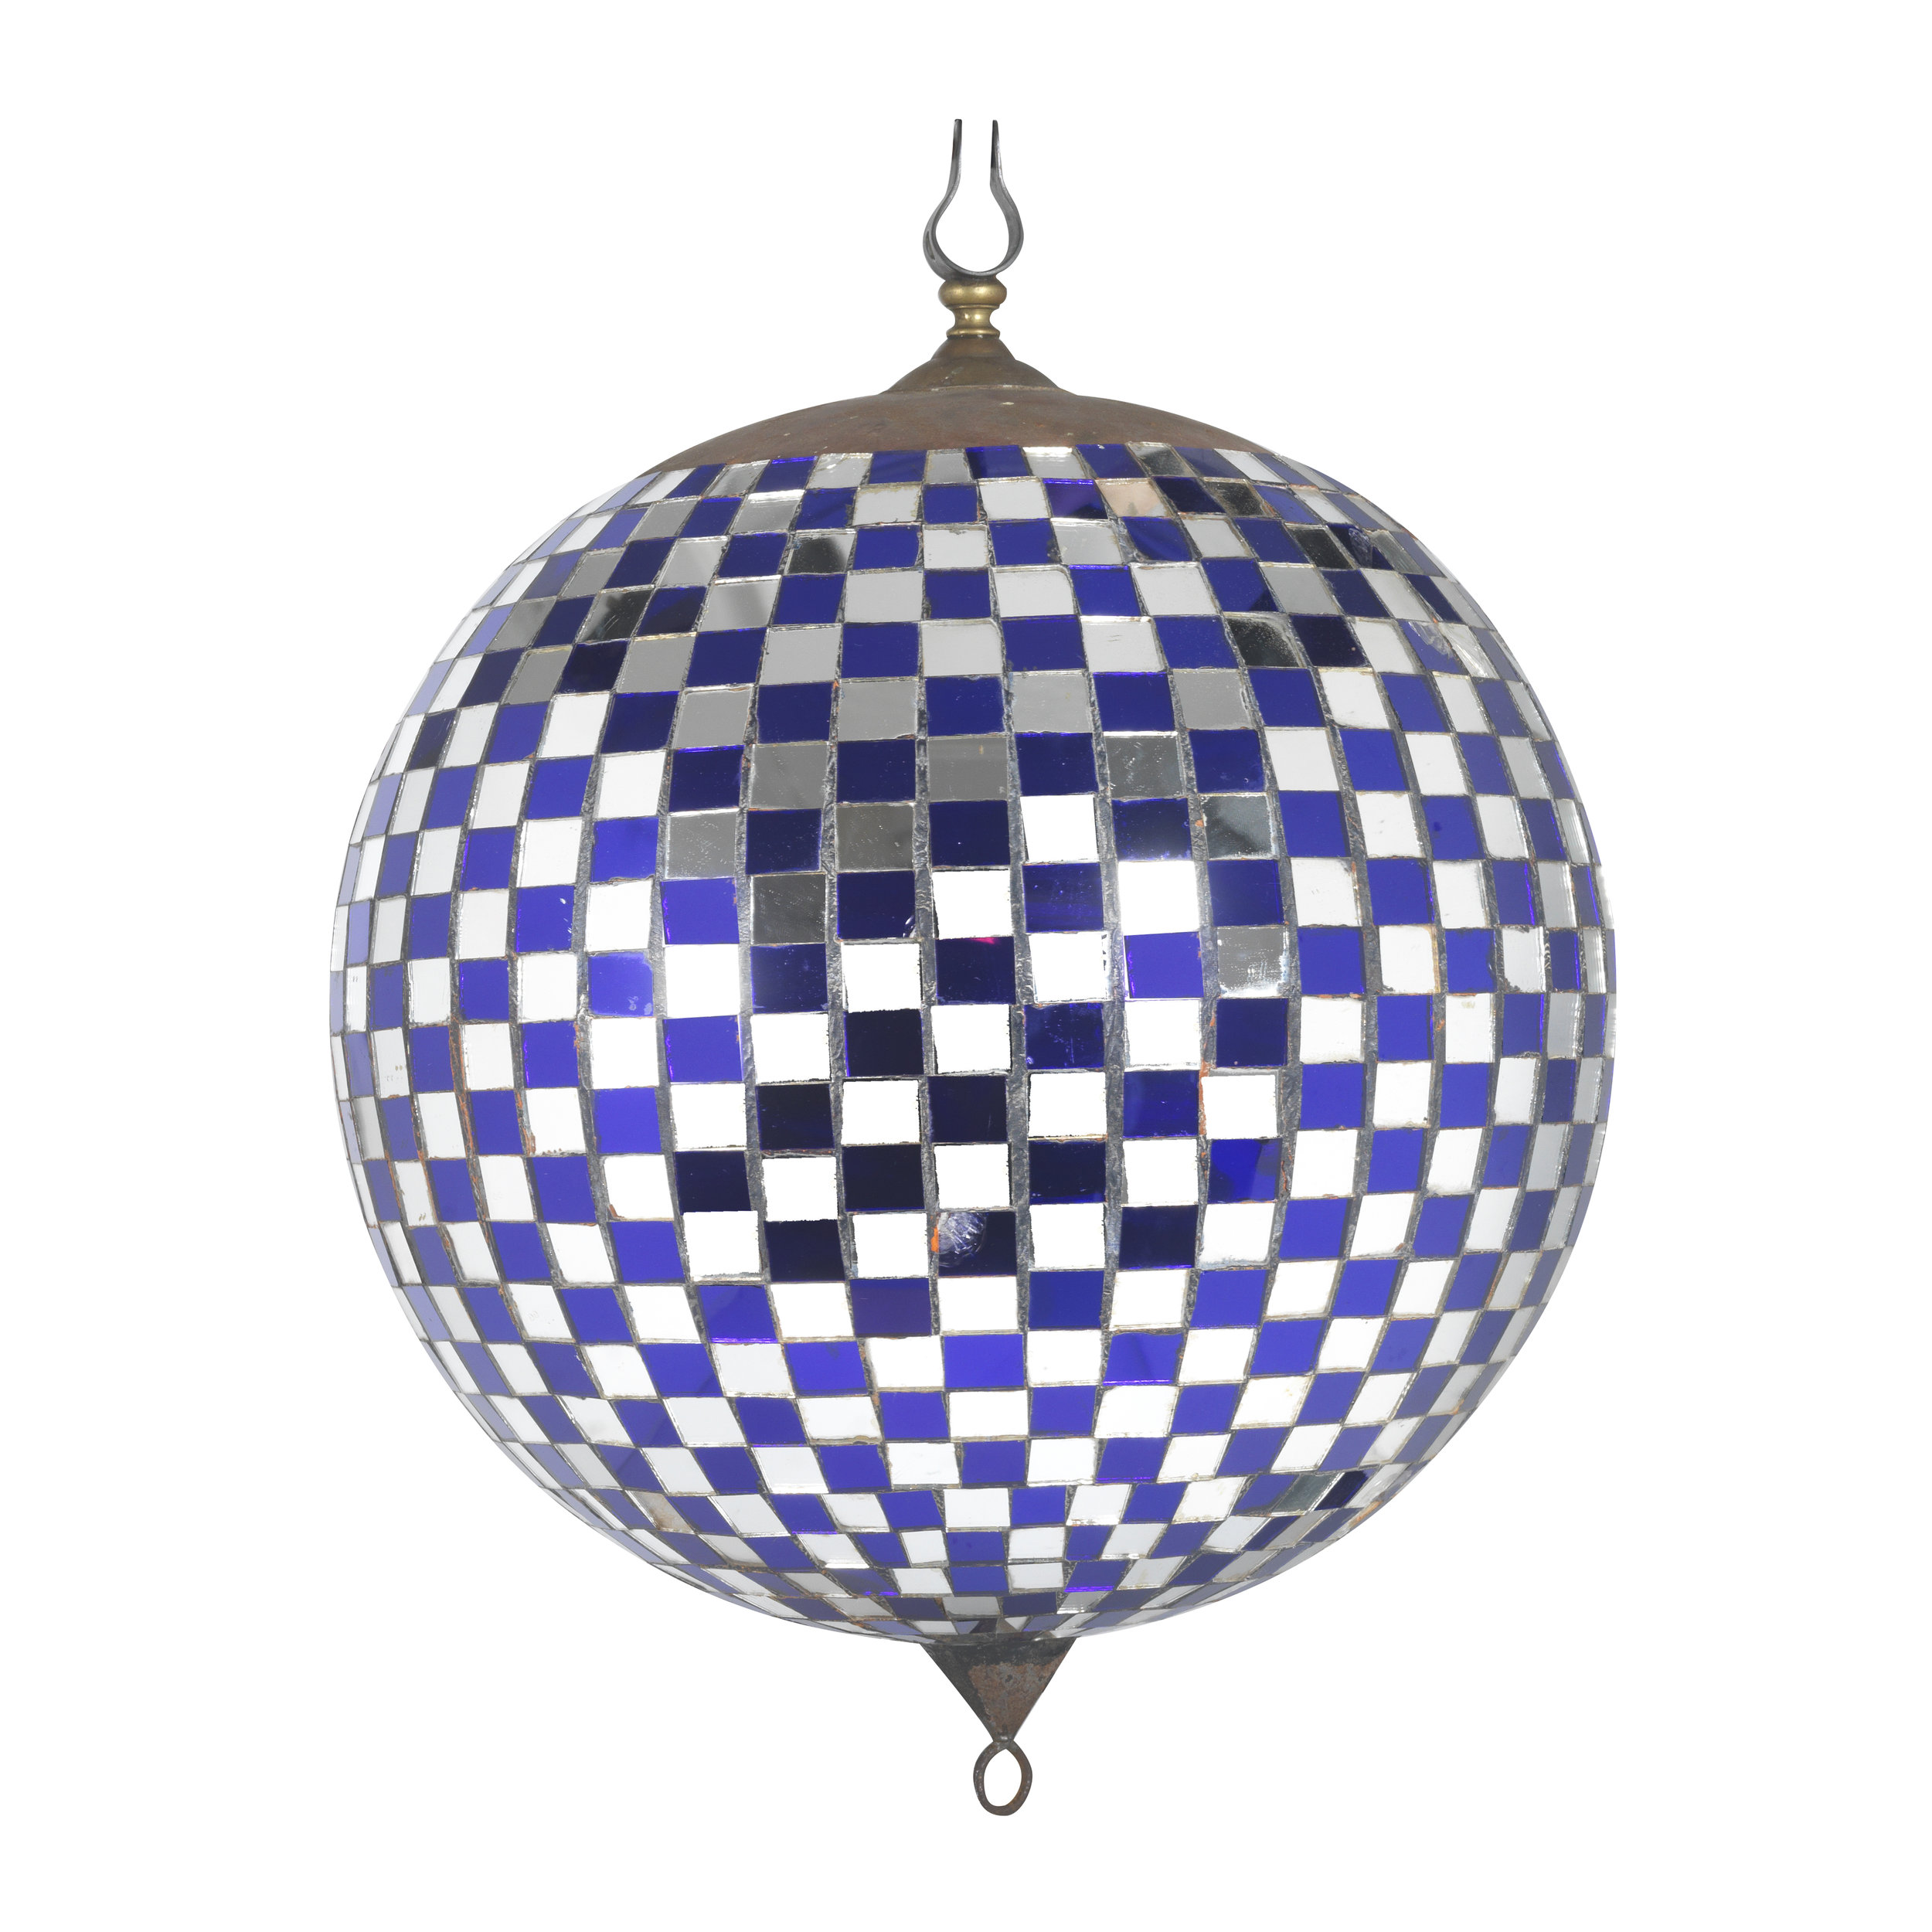 Chequered blue and silver mirrored glass ballroom mirrorball. Early 20th Century, continental.  Diameter 40cm  AVAILABLE